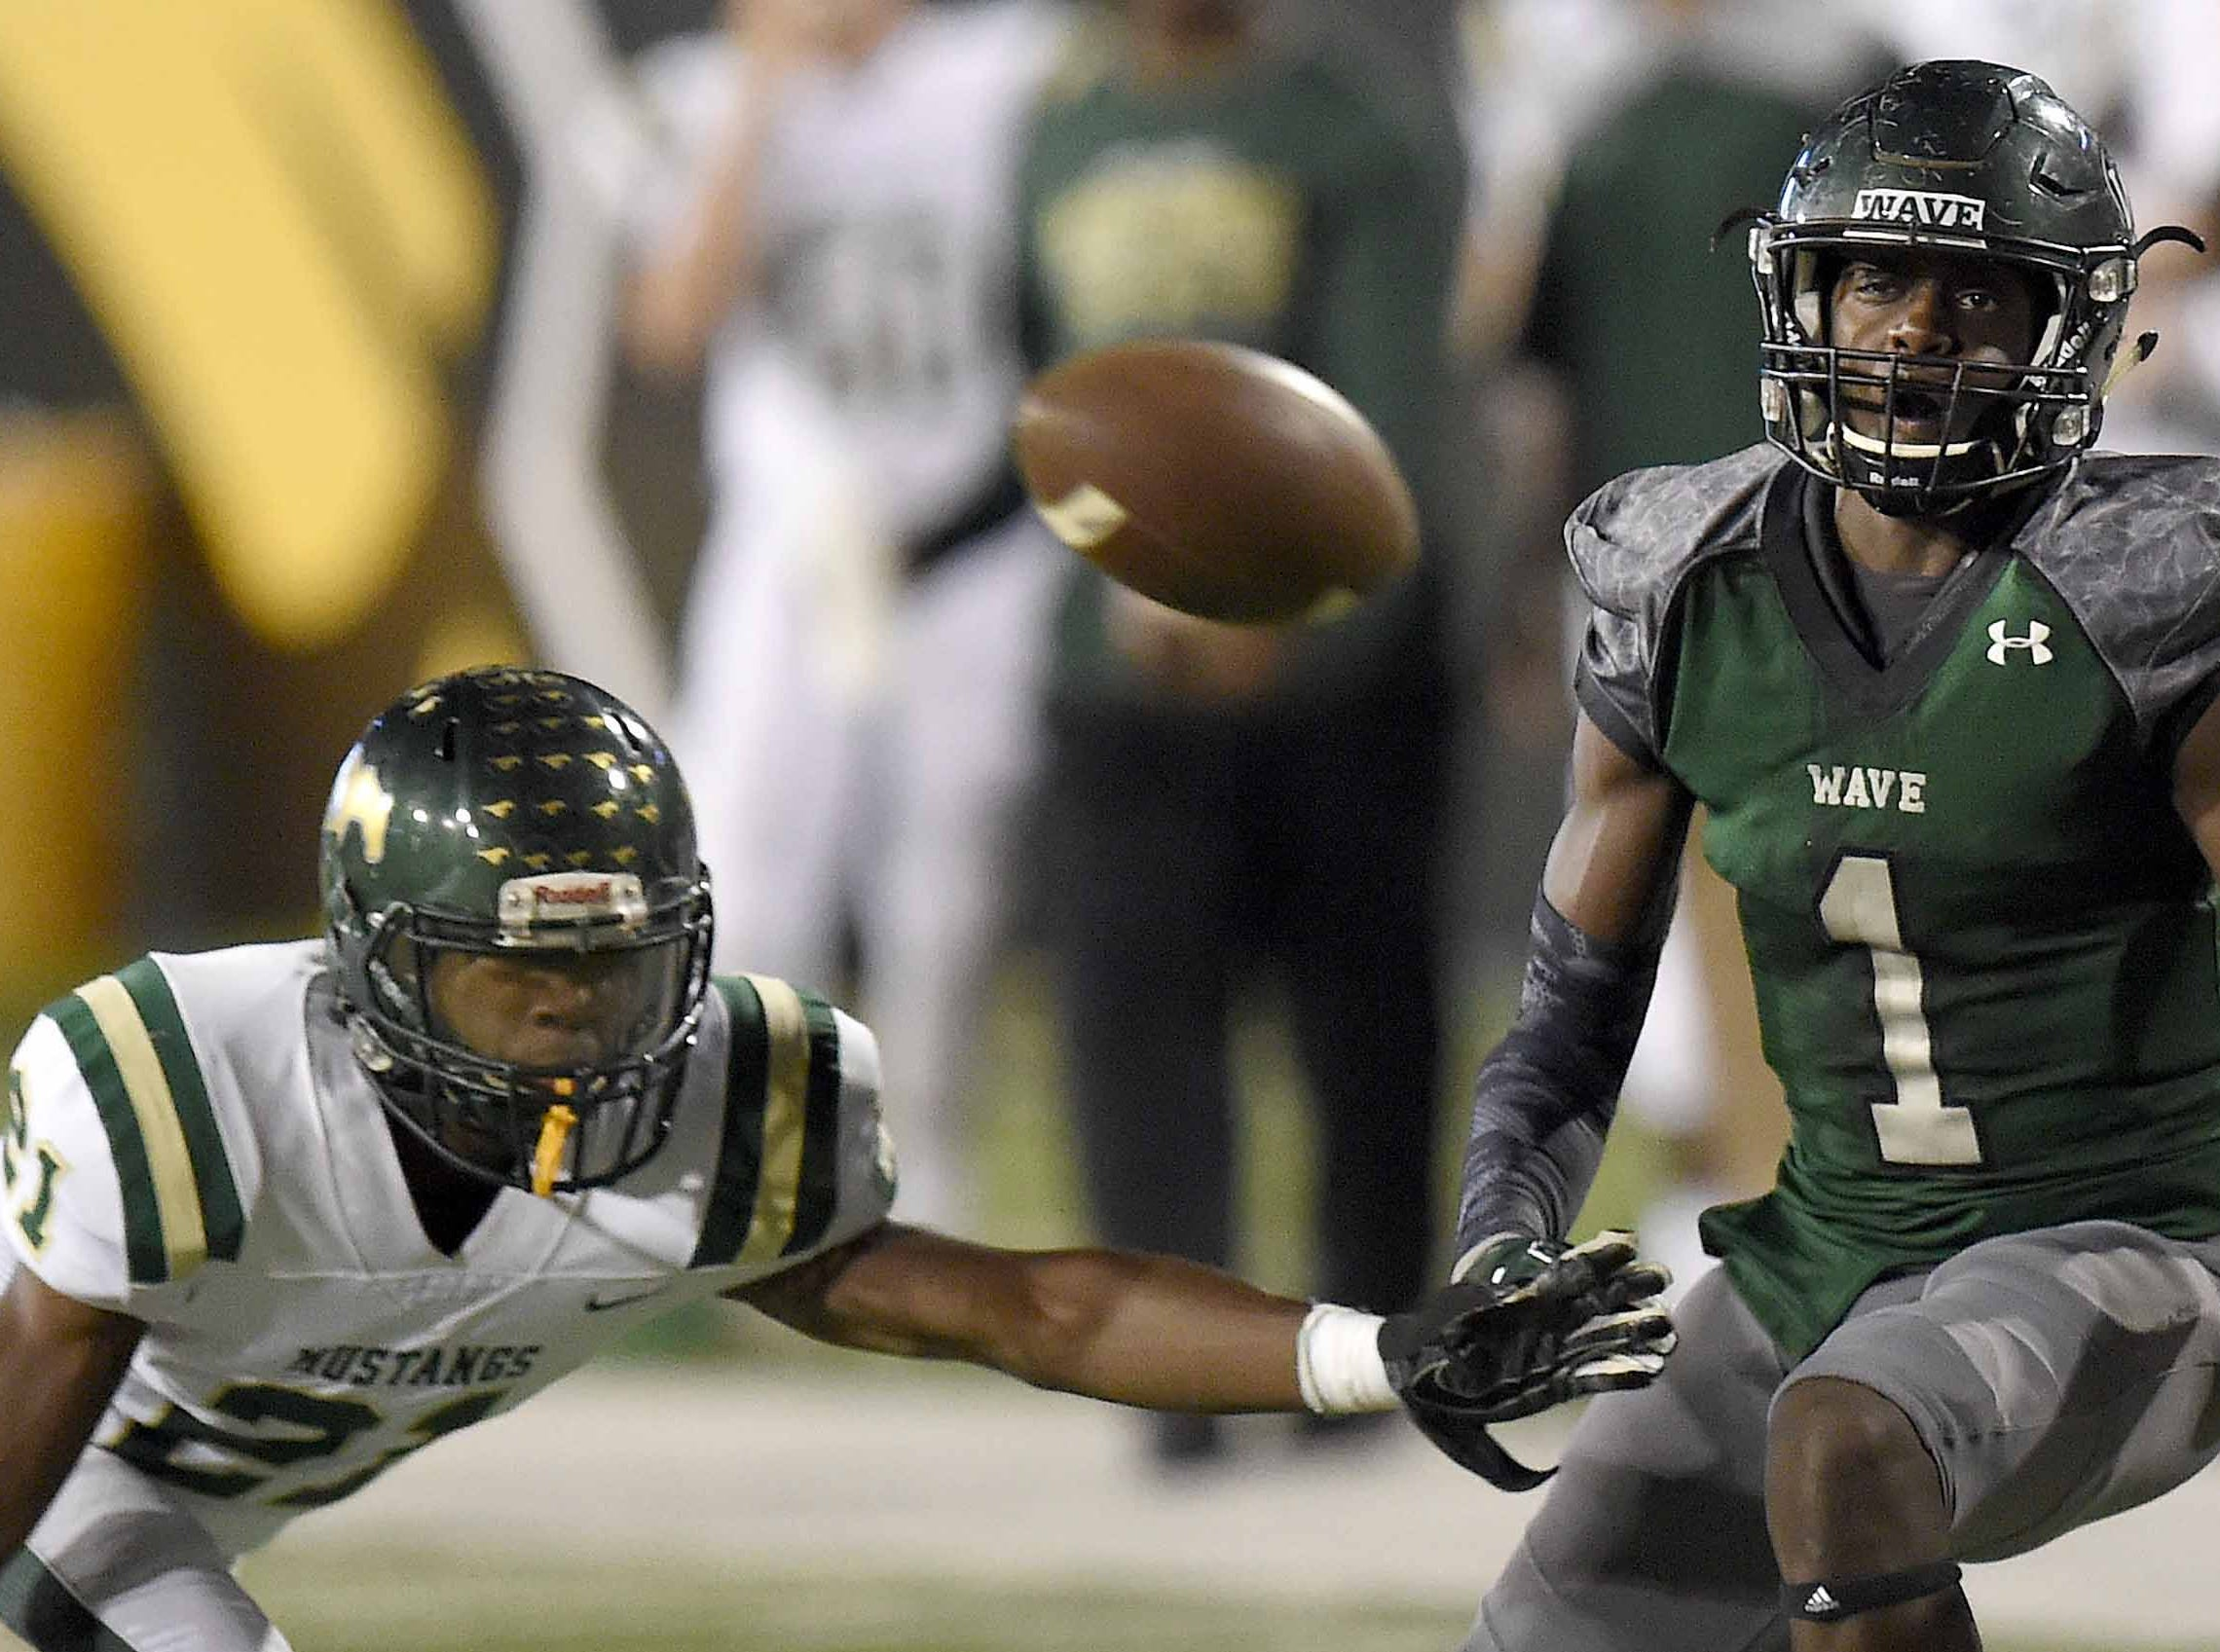 West Jones' Cedric Bender (21) breaks up a pass to West Point's Jacquerius Crawford (1) on Saturday, December 1, 2018, in the MHSAA BlueCross BlueShield Gridiron Classic High School Football Championships in M.M. Roberts Stadium on the University of Southern Mississippi campus in Hattiesburg, Miss.